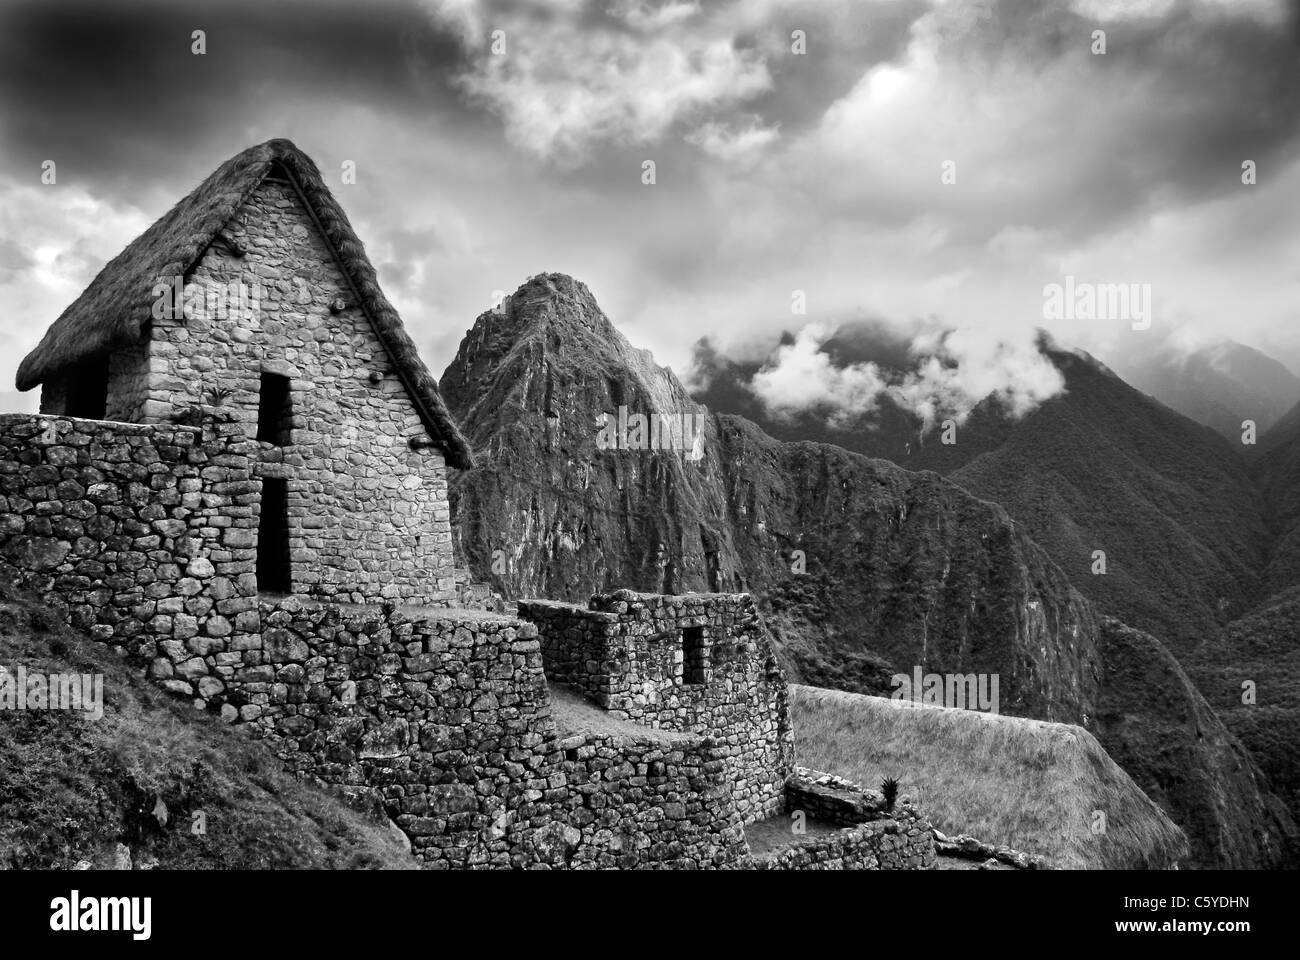 Scenic view of Machupicchu high up in the Peruvian Andes. With wooden hut and misty mountains. Monotone image. - Stock Image